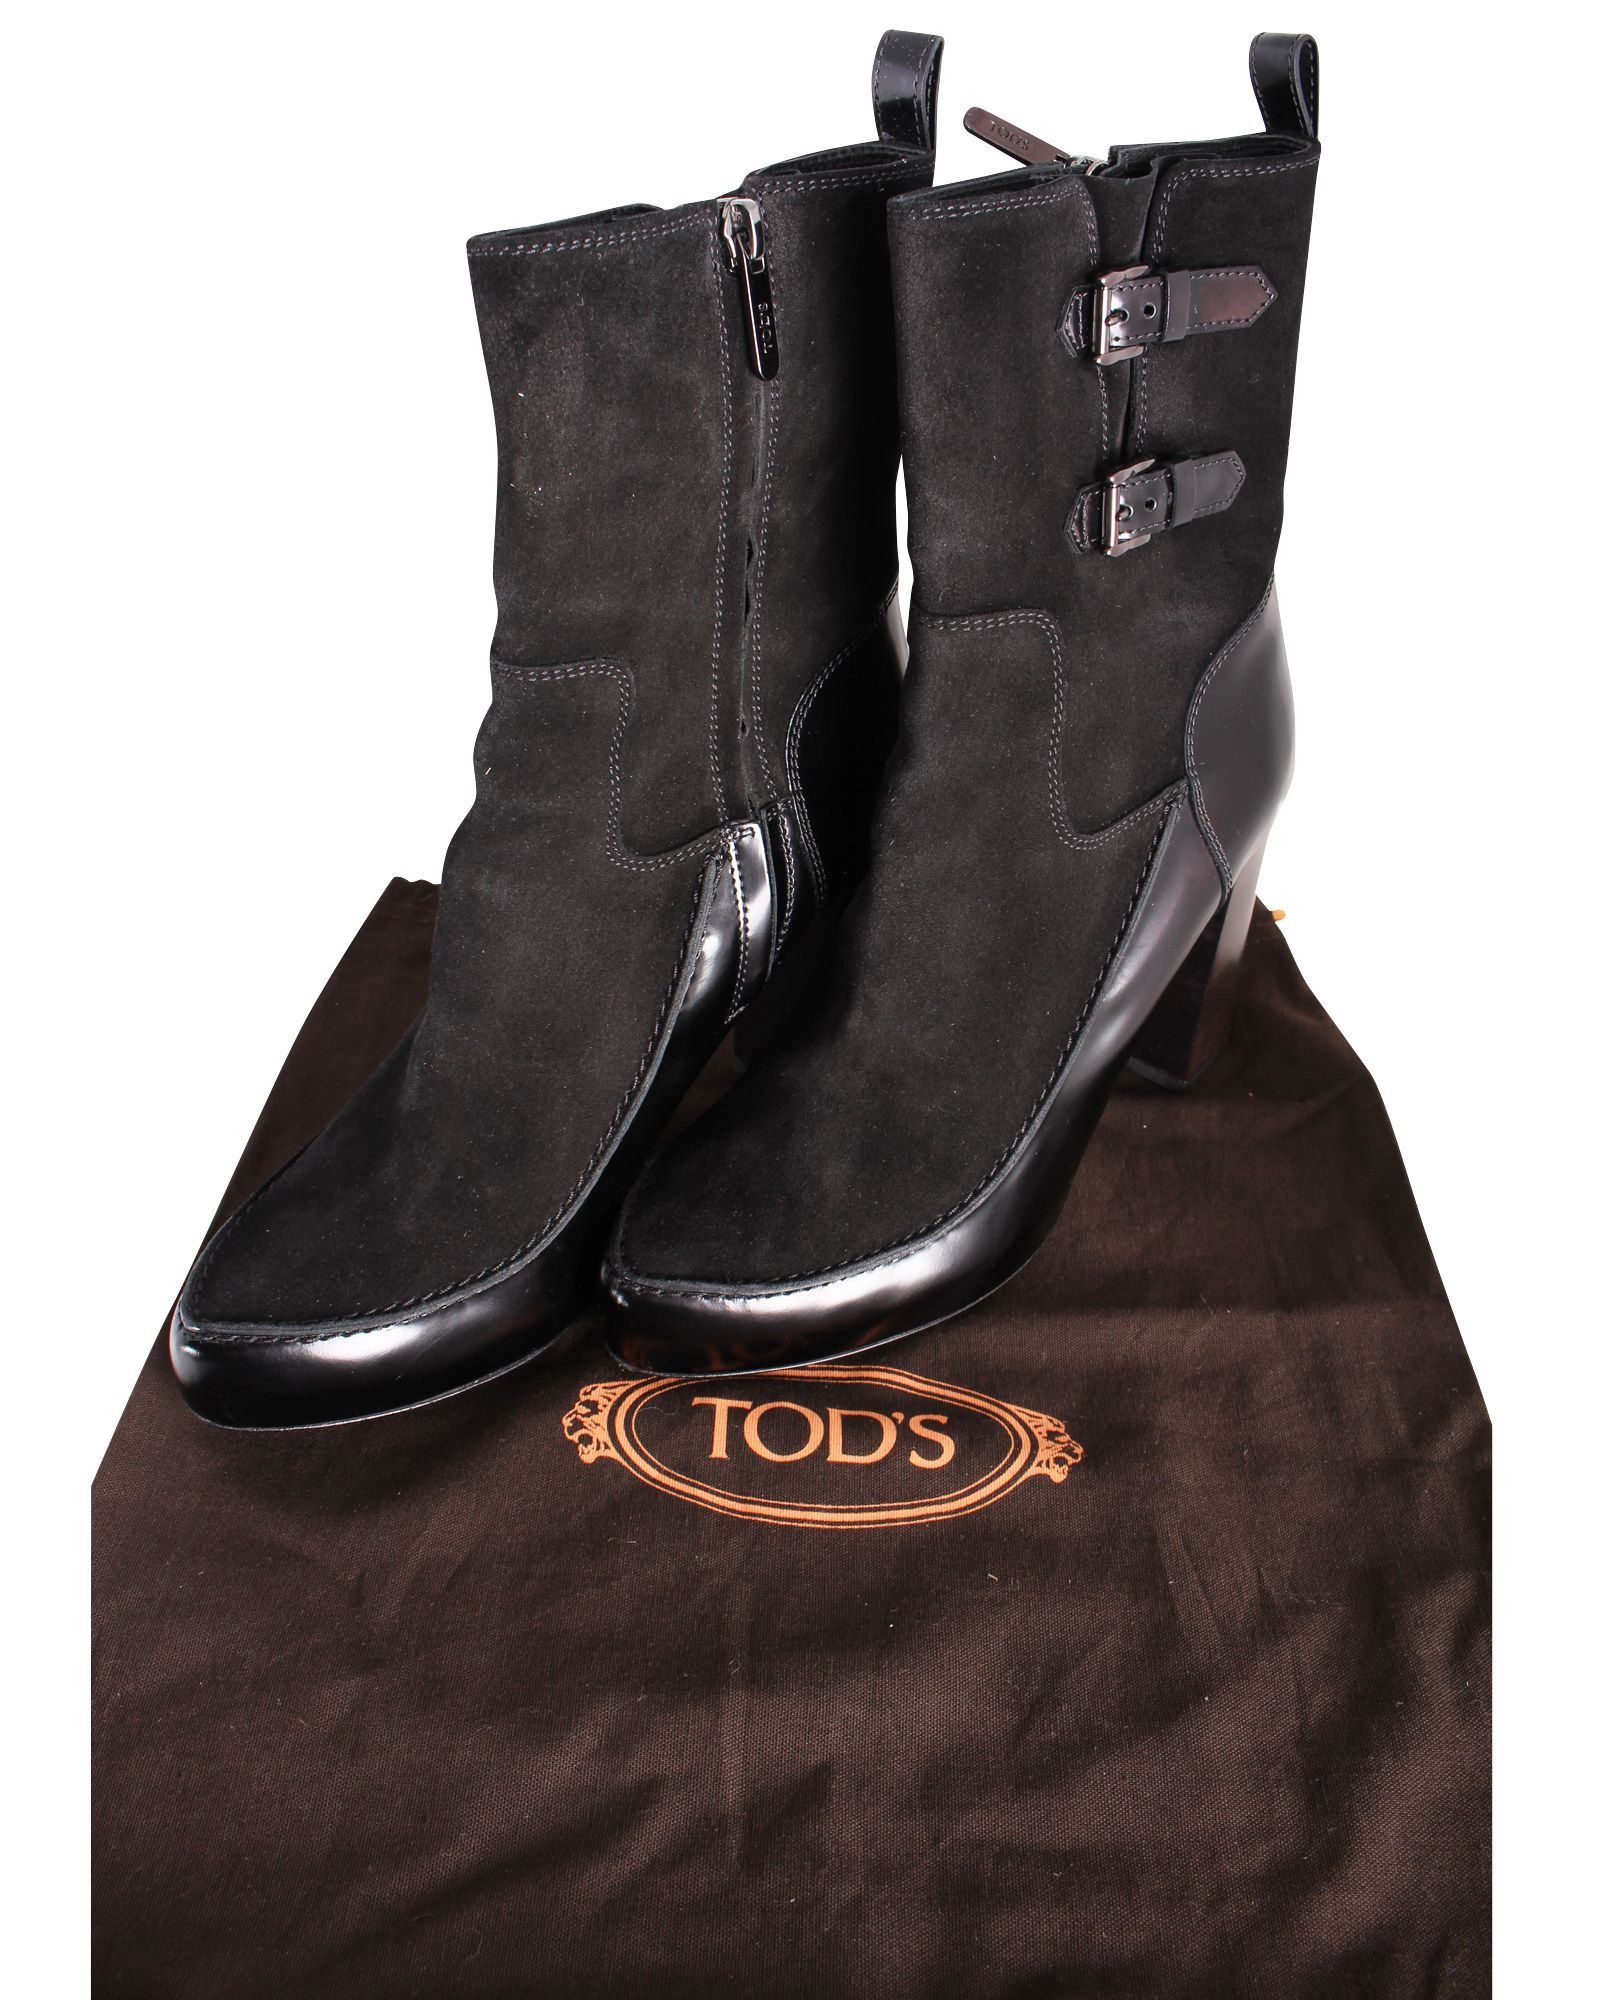 Tods Black Suede Boots With Straps